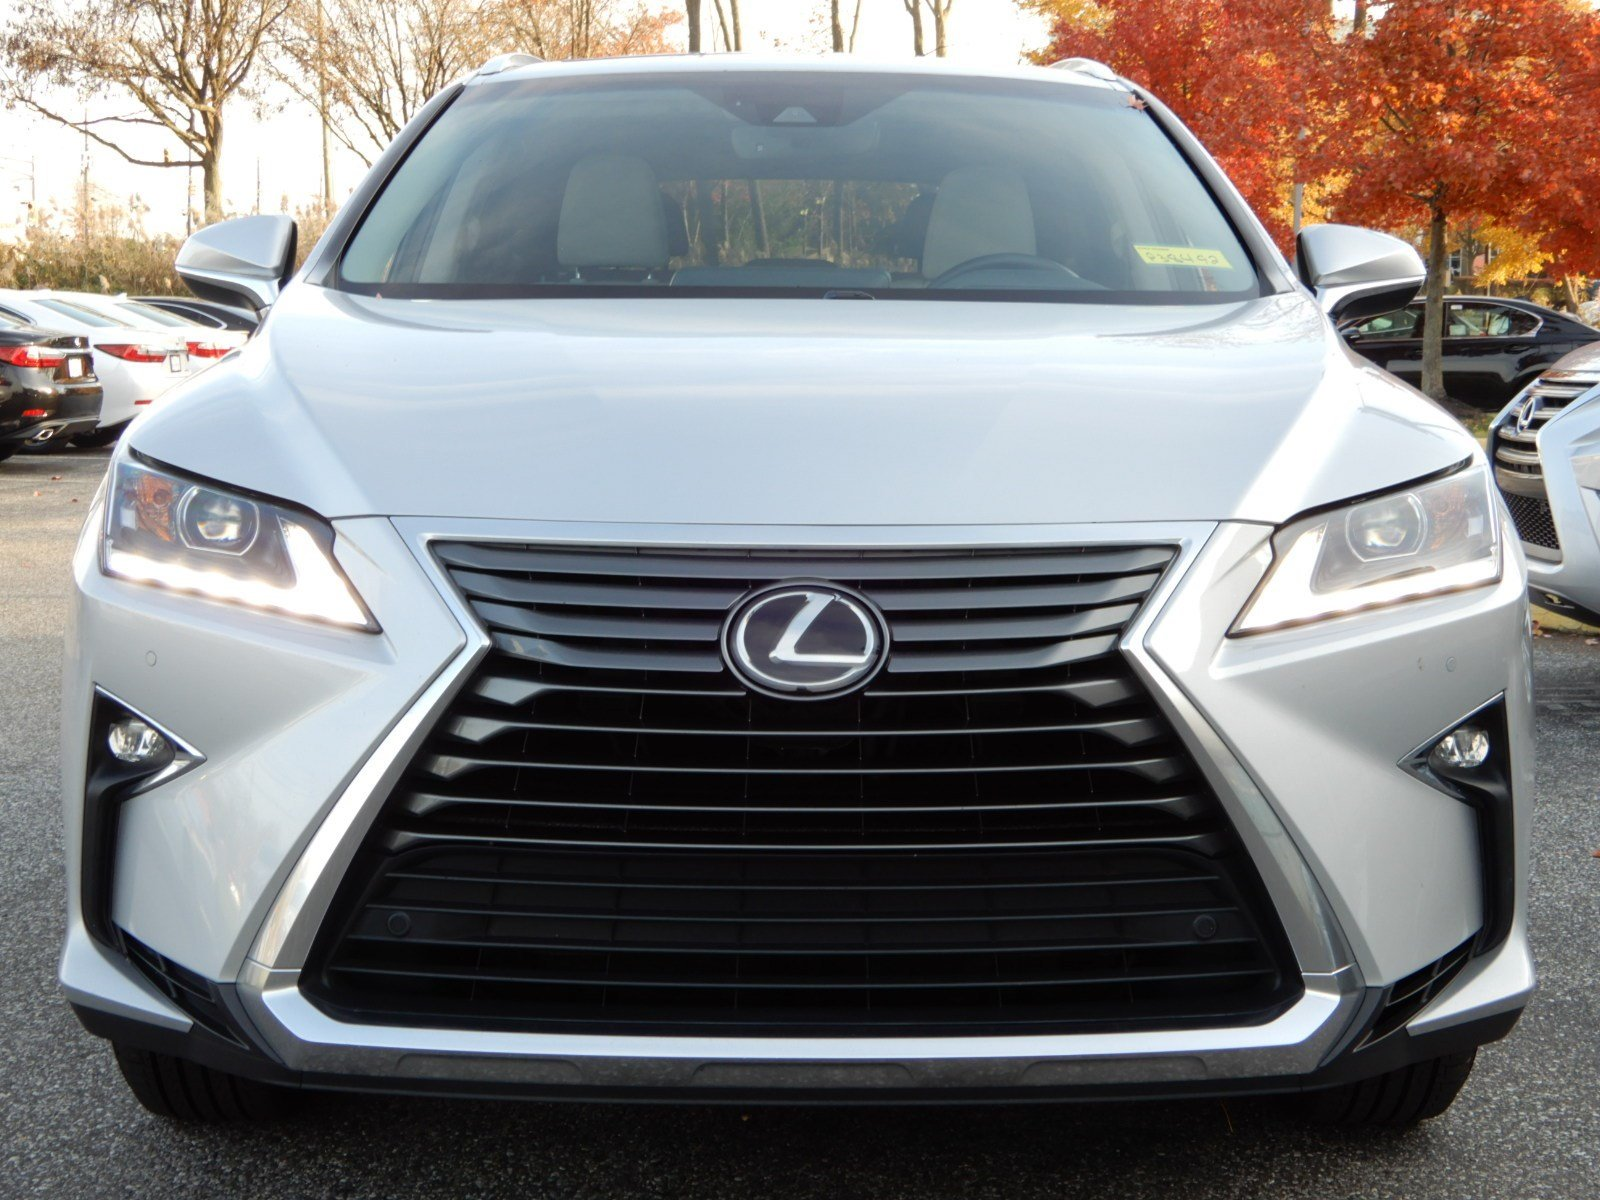 Certified Pre-Owned 2017 Lexus RX350